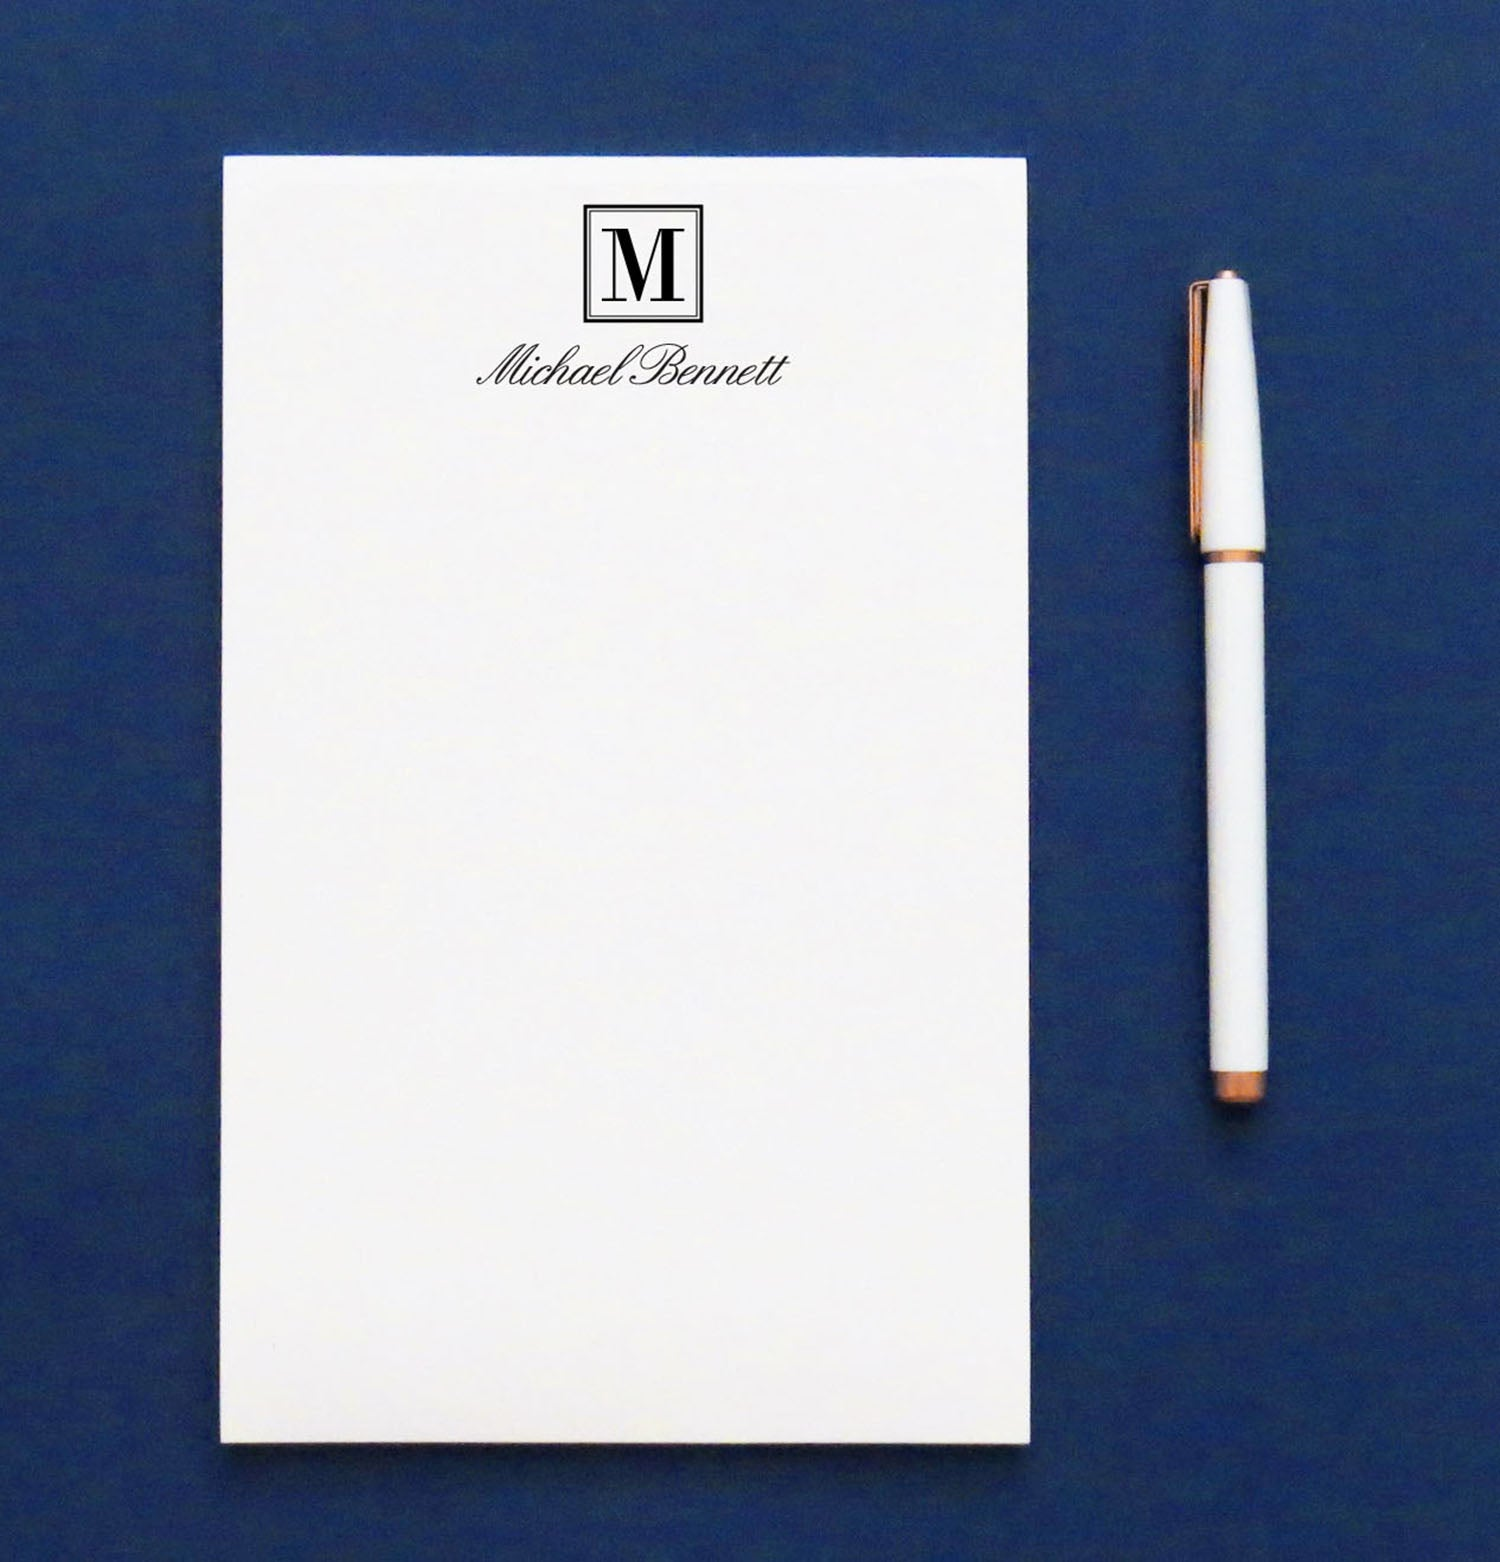 NP103 modern 1 letter monogram notepad set personalized letter writing stationery